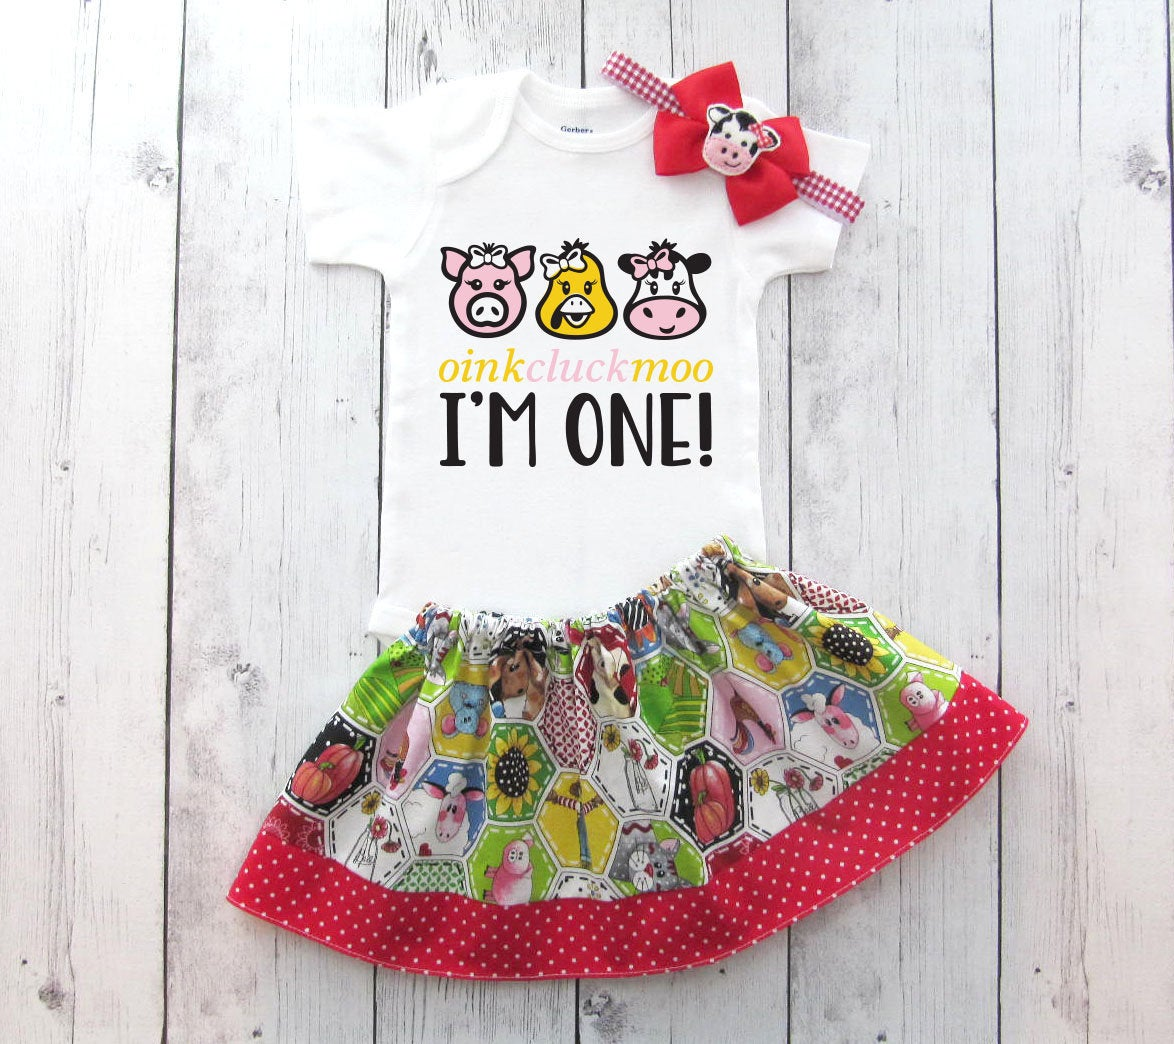 Barnyard First Birthday Outfit for Baby Girl - farm animal birthday girl, oink cluck moo I'm one, old macdonald had a farm, cow birthday